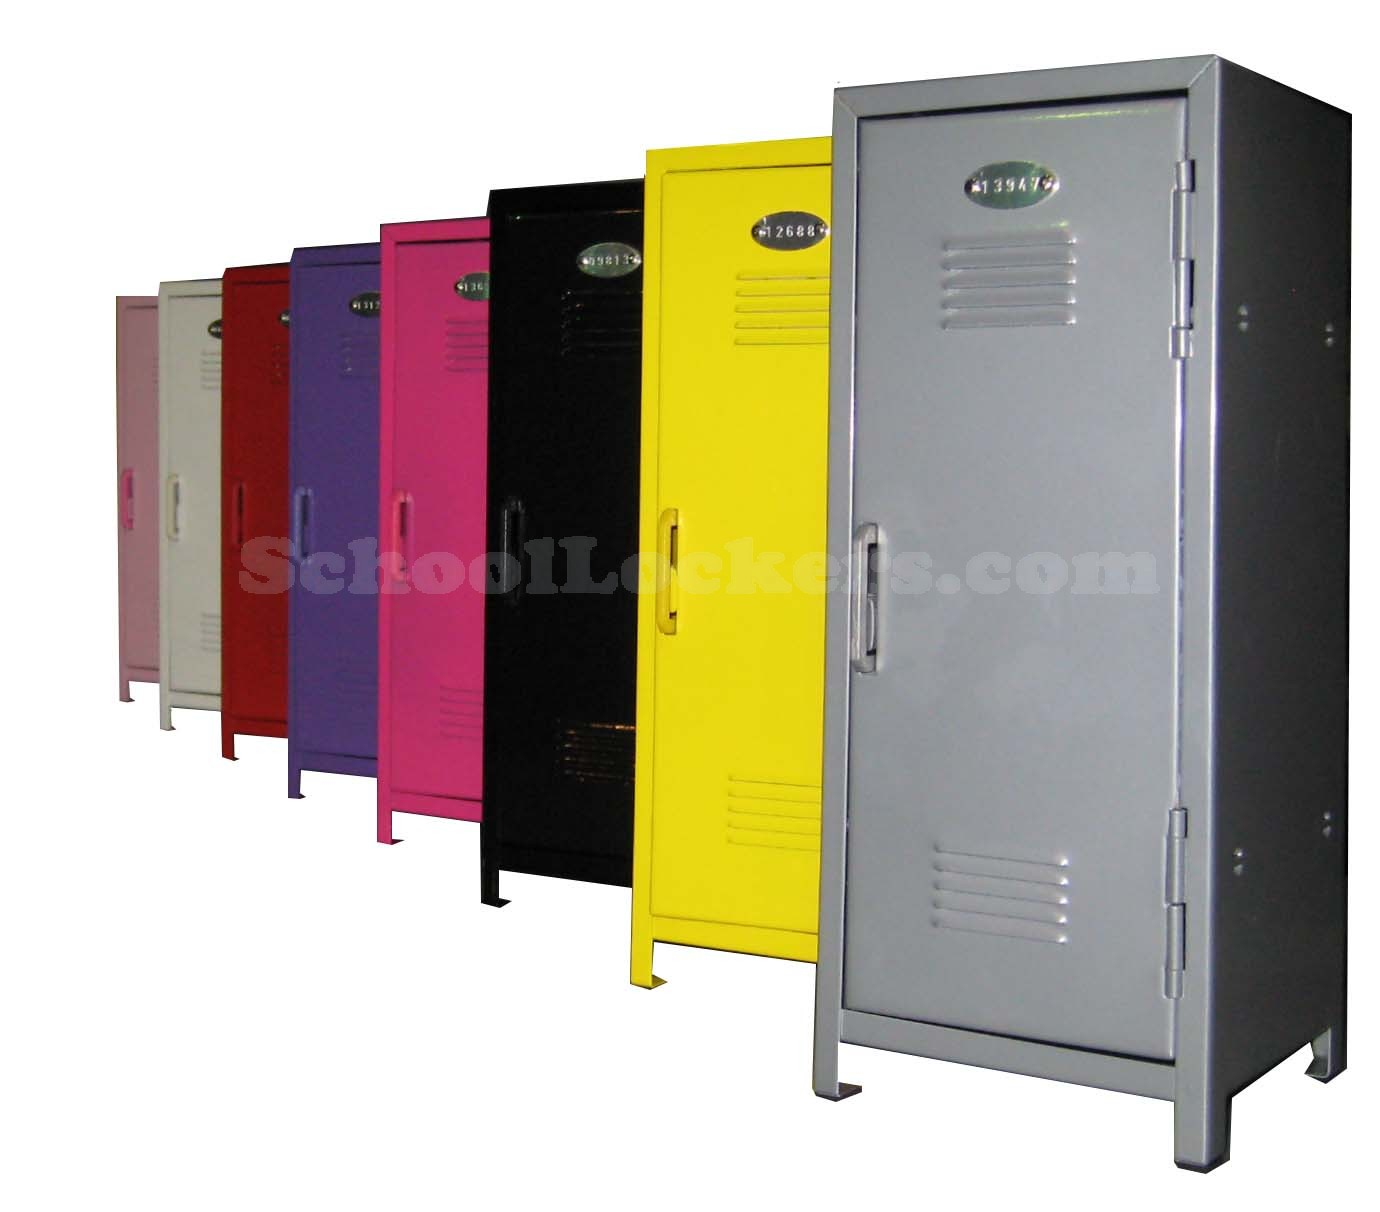 tiny kids locker. Tiny Metal Lockers for Kids   SchoolLockers com